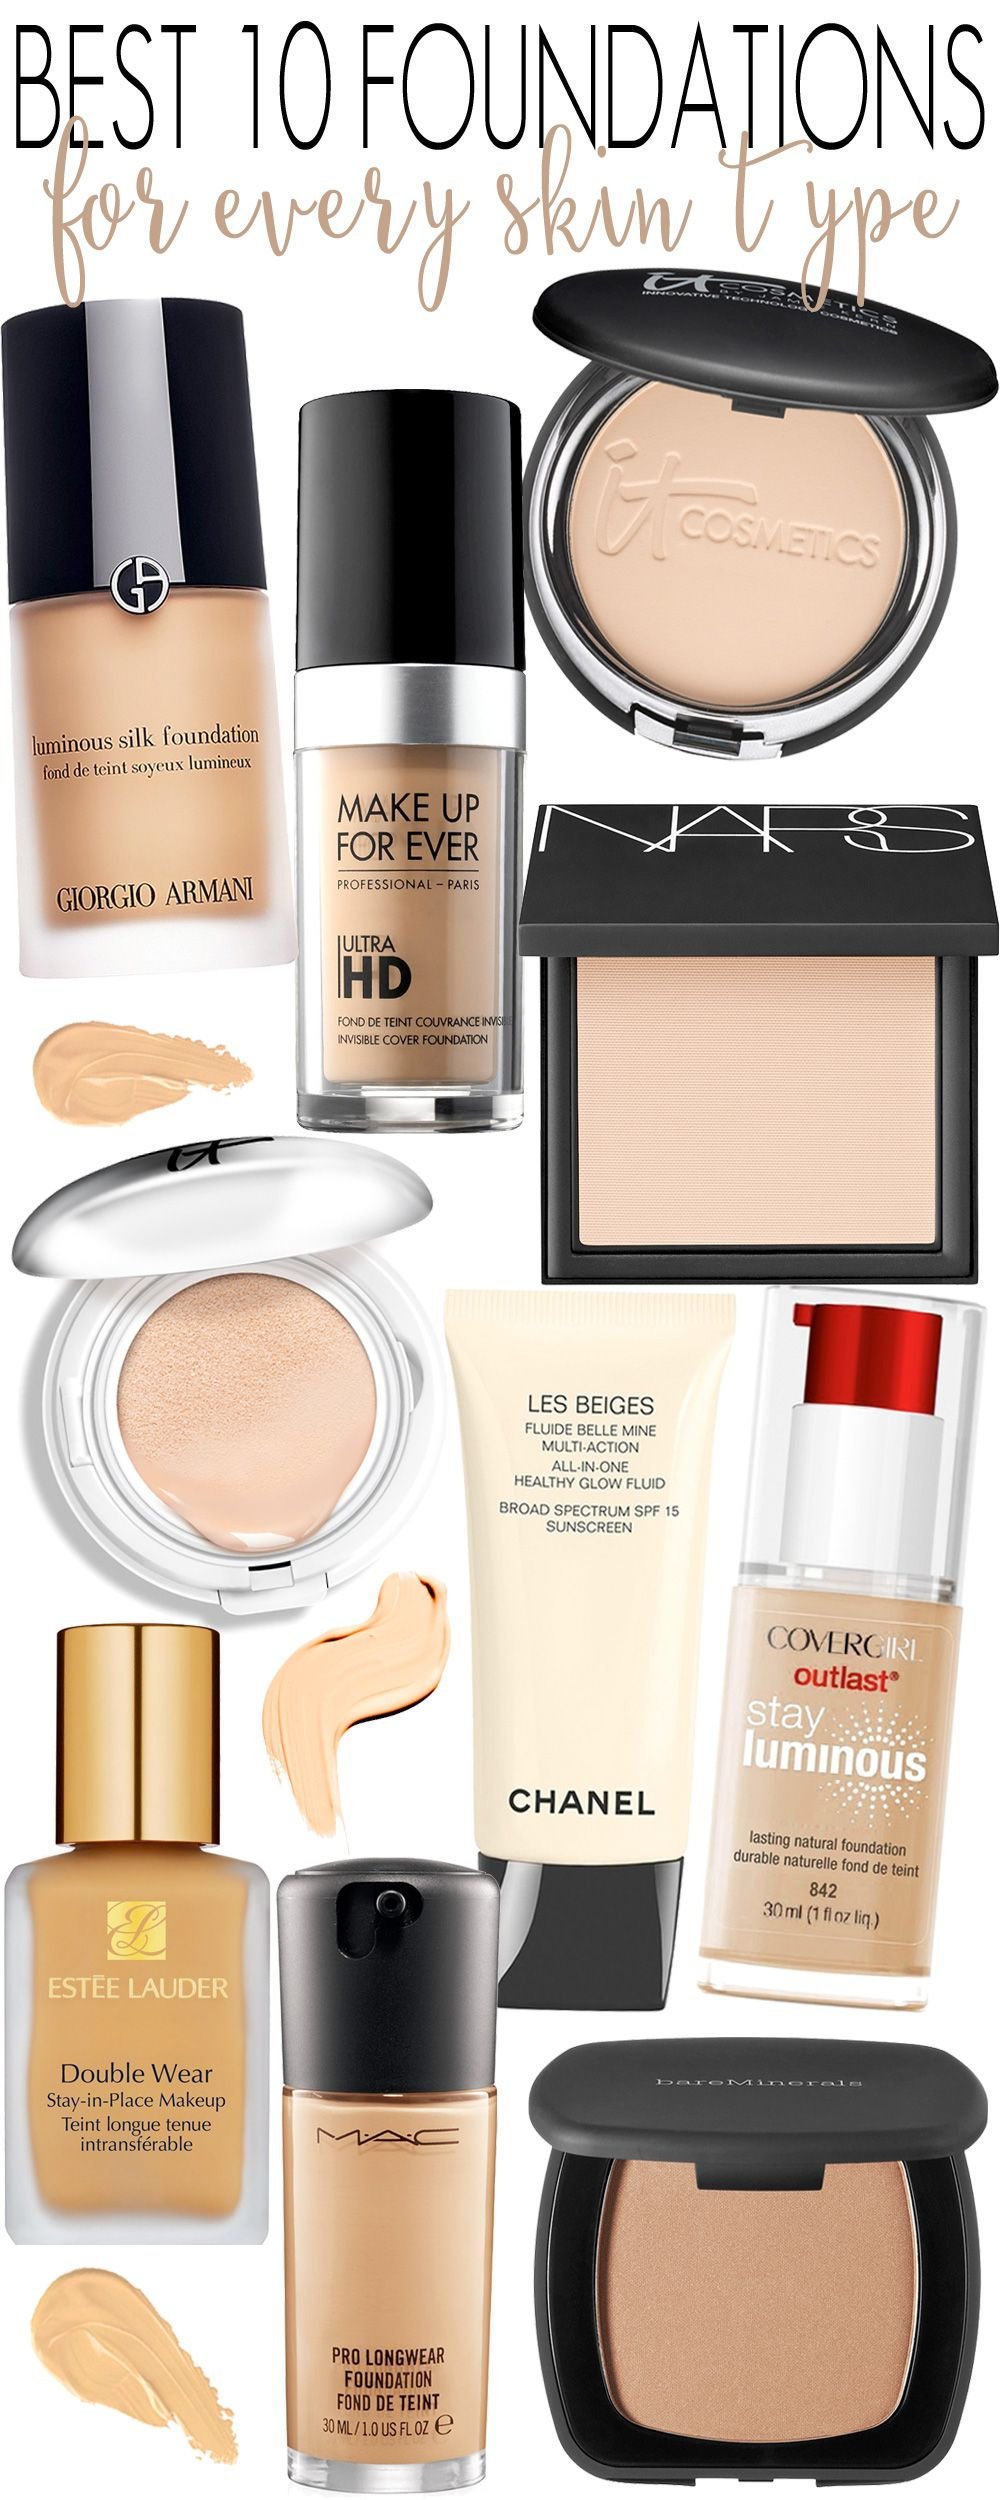 Best 10 Foundations For Every Skin Type.